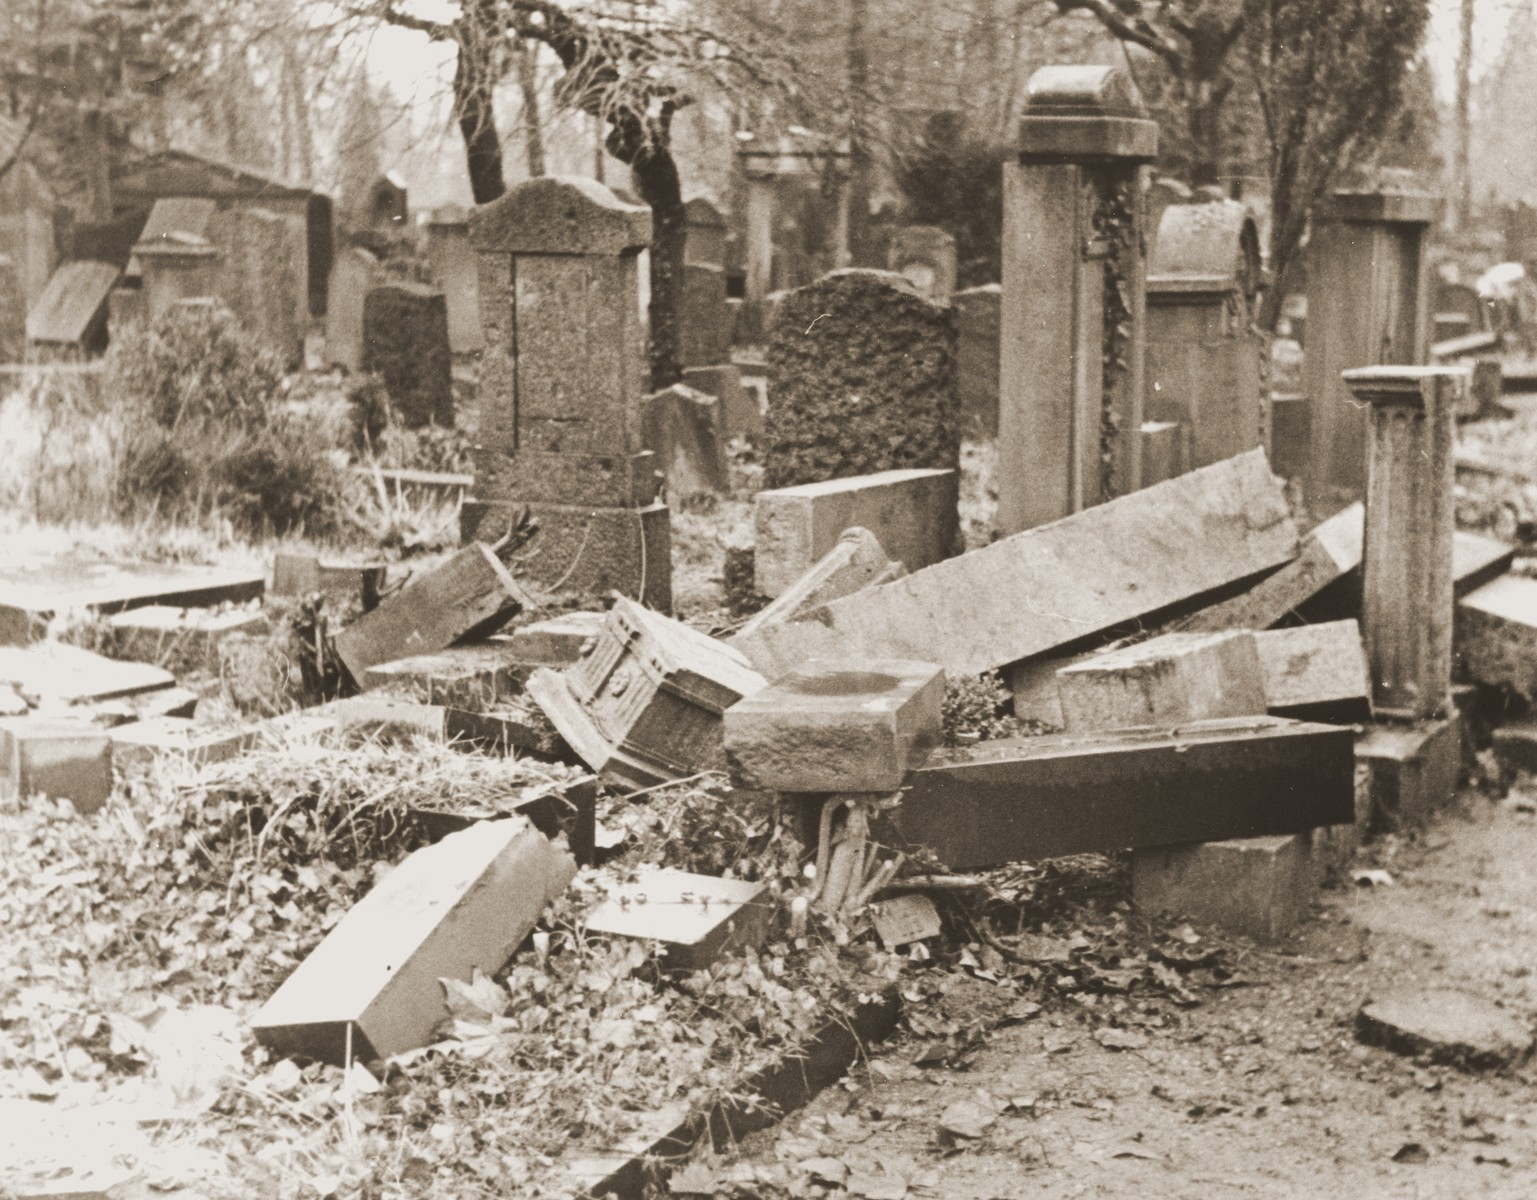 View of the desecrated Jewish cemetery in Frankfurt-am-Main.